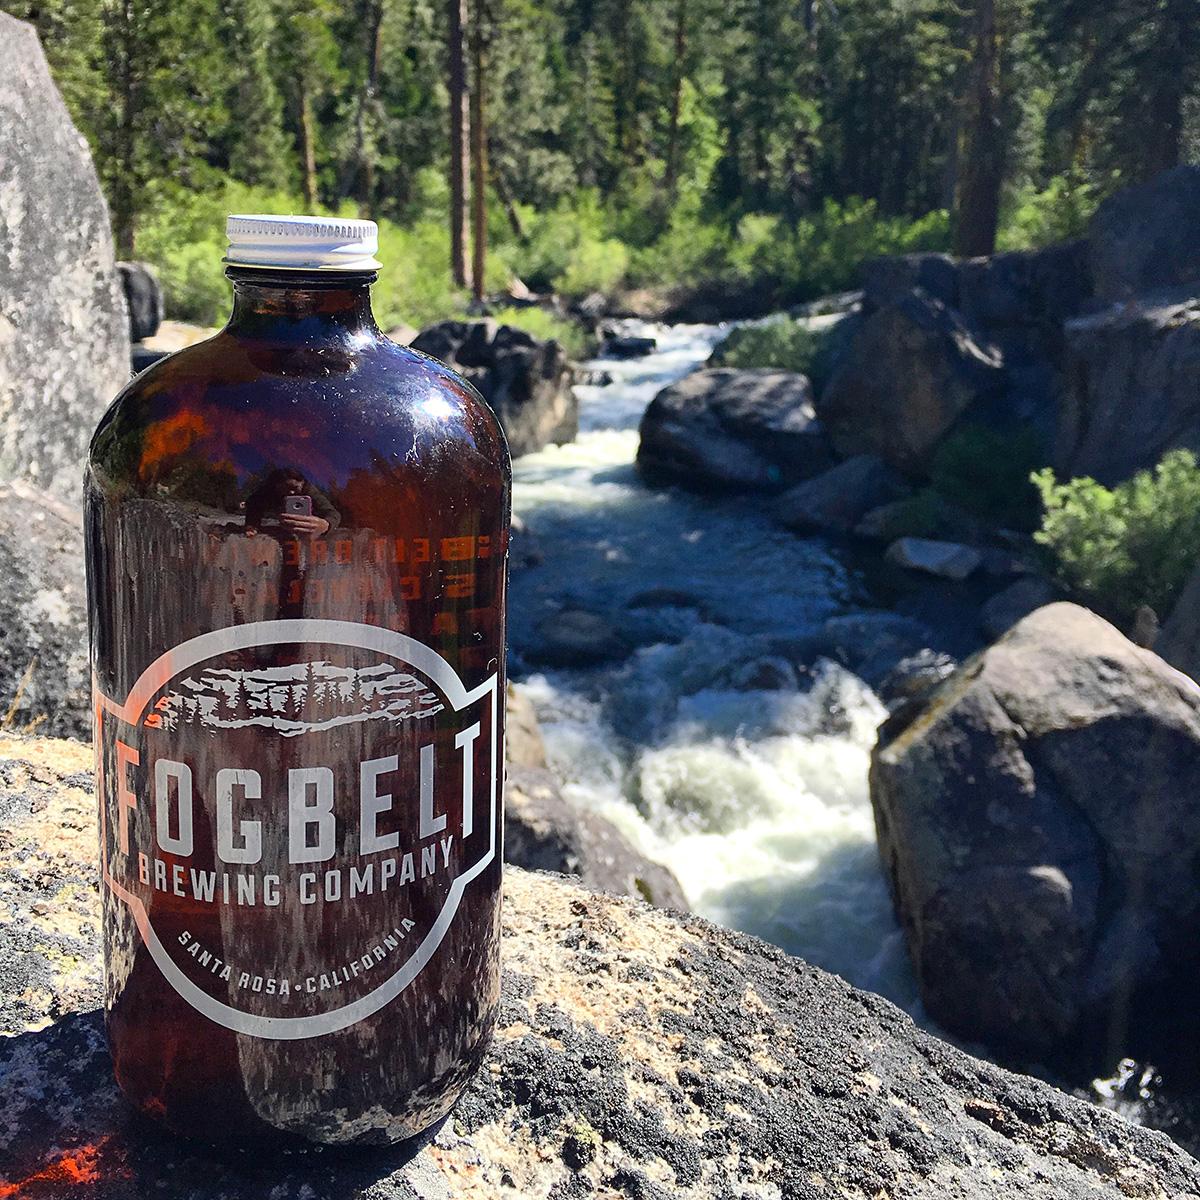 Fogbelt Brewing Co